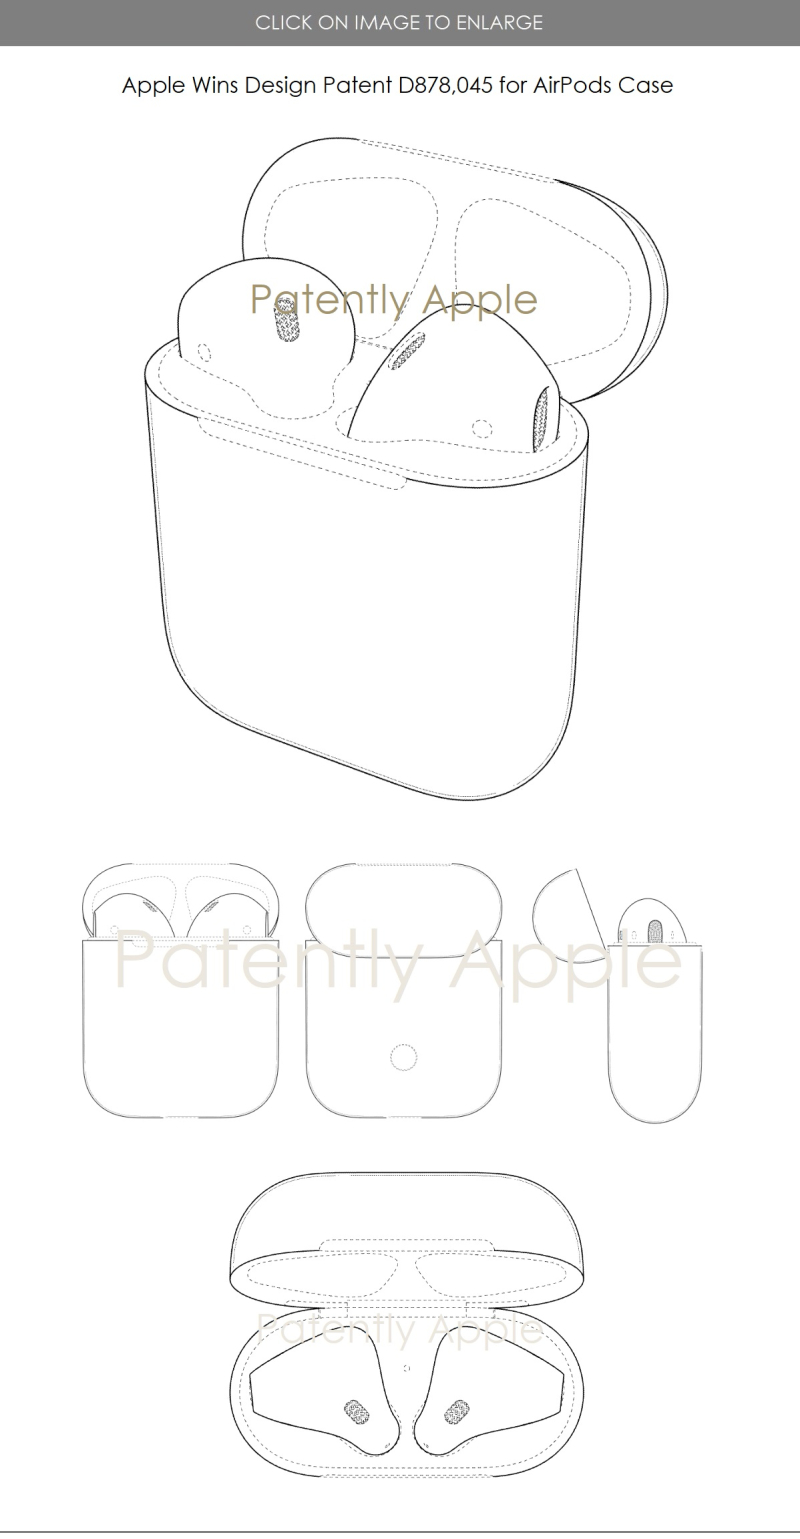 4 AirPods Case design patent win